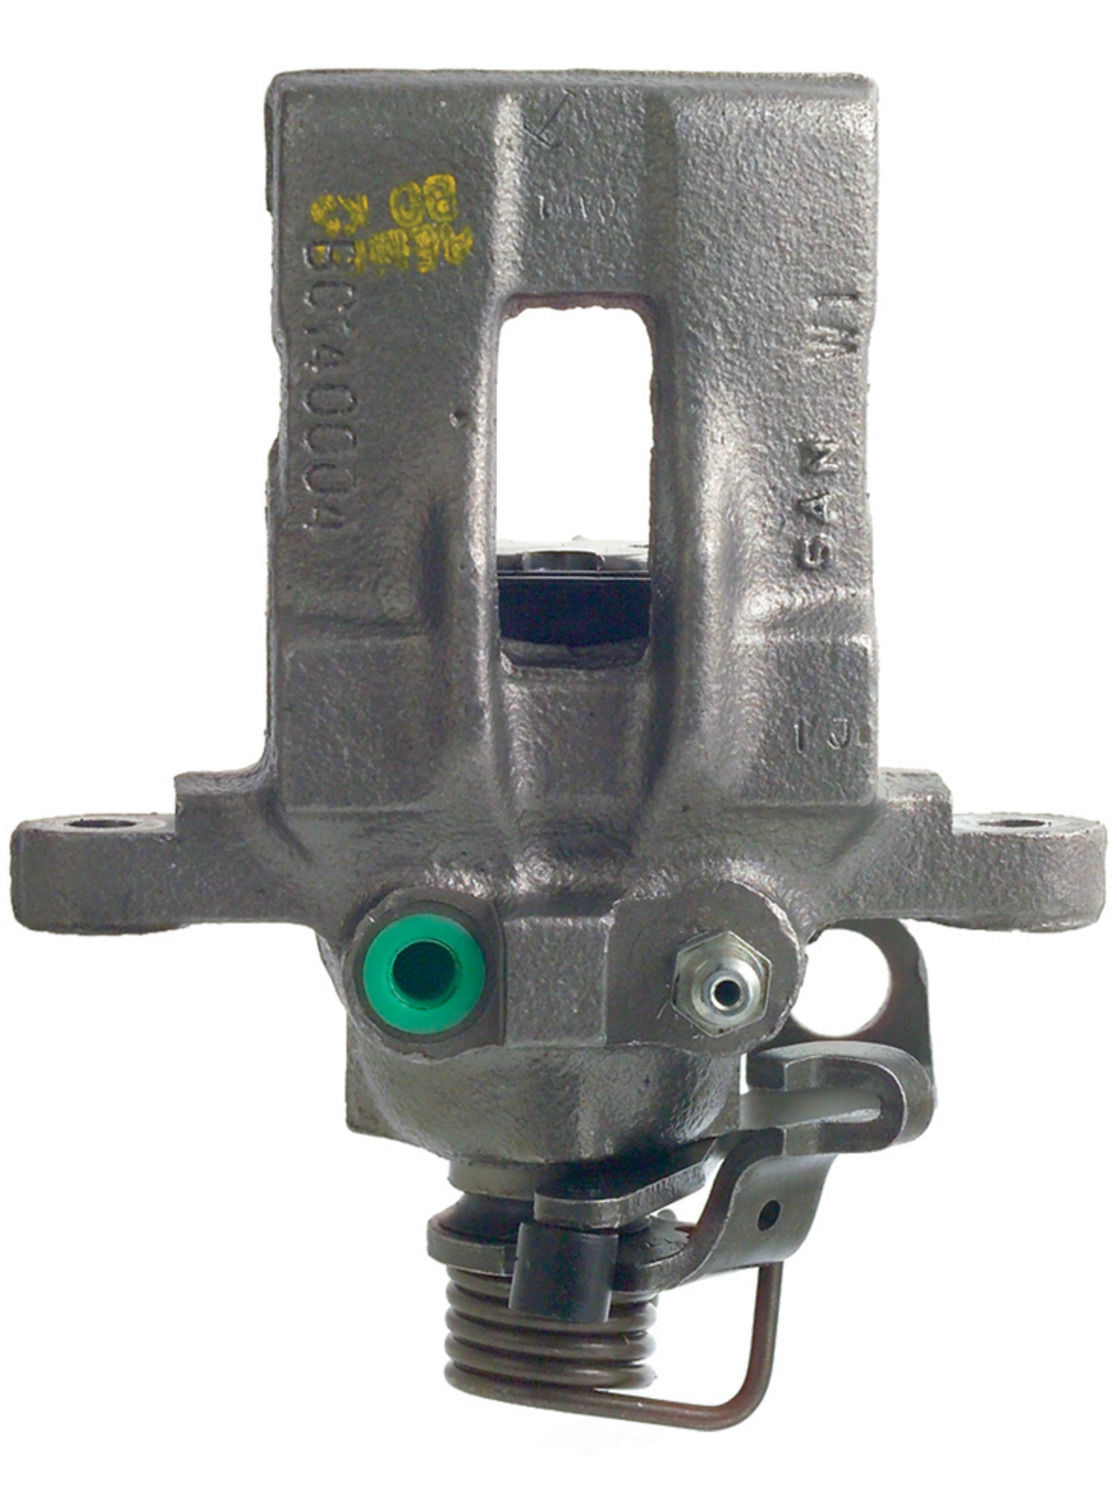 CARDONE/A-1 CARDONE - Reman Friction Choice Caliper (Rear Left) - A1C 19-1835